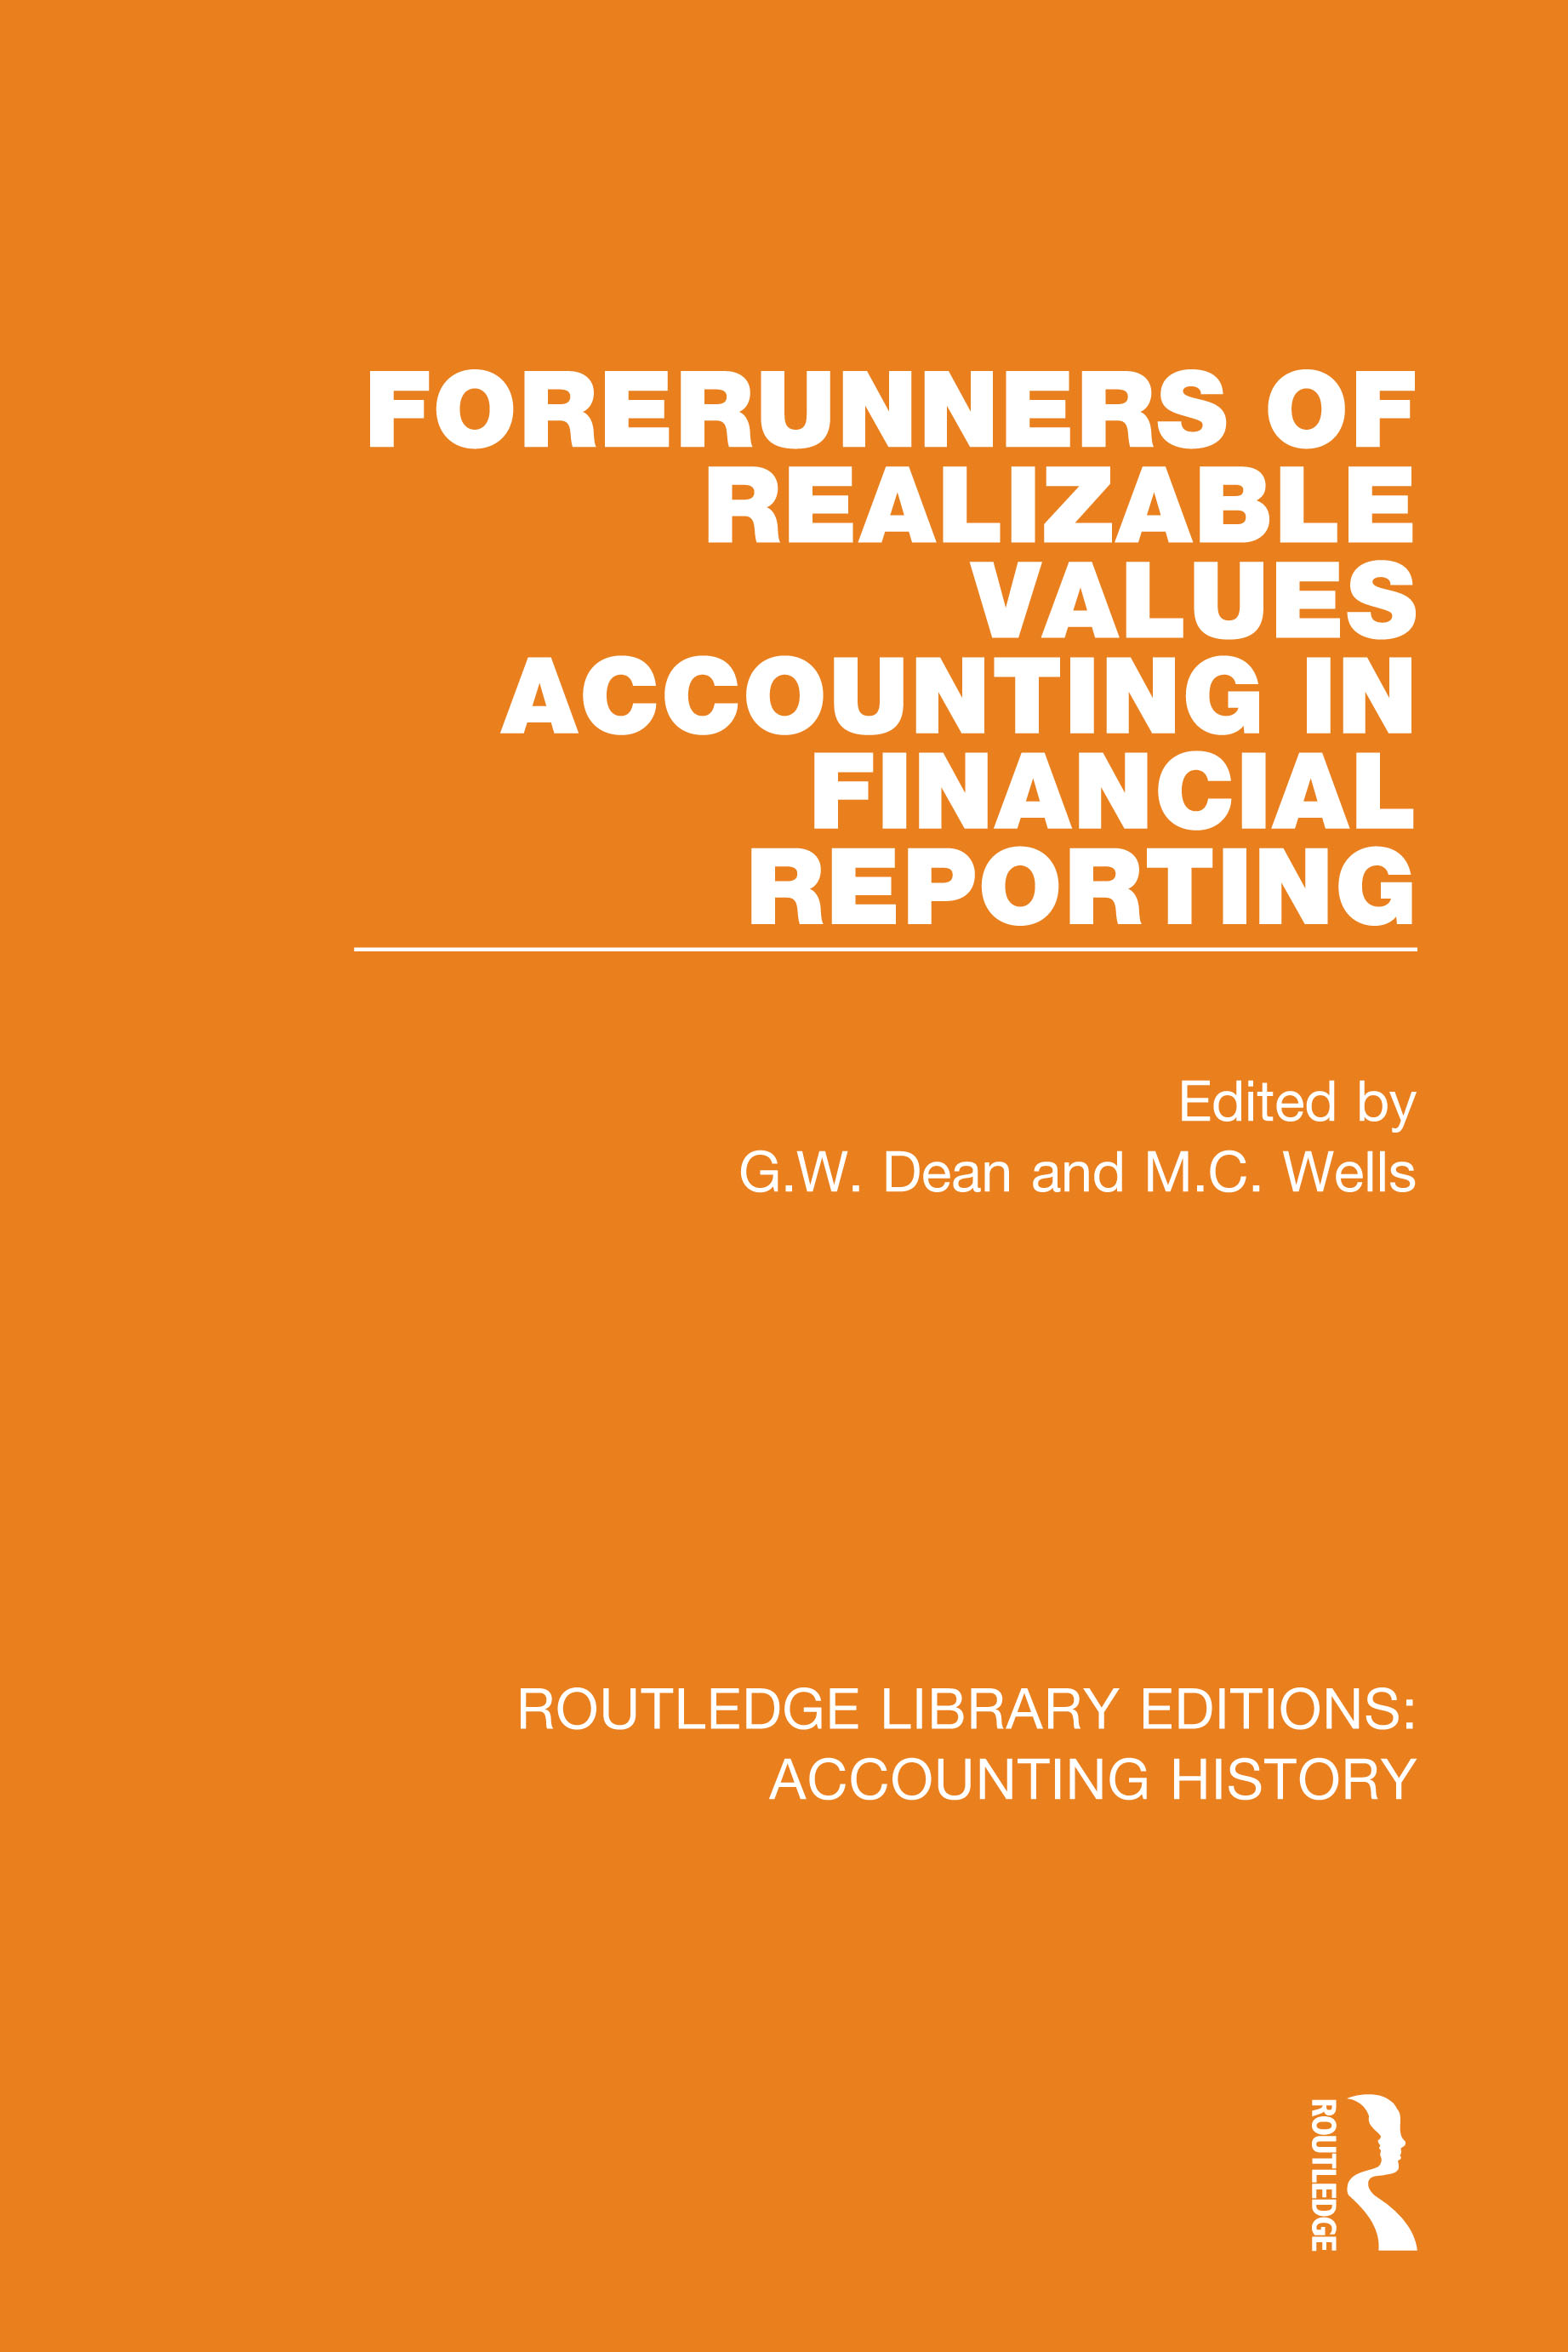 Forerunners of Realizable Values Accounting in Financial Reporting